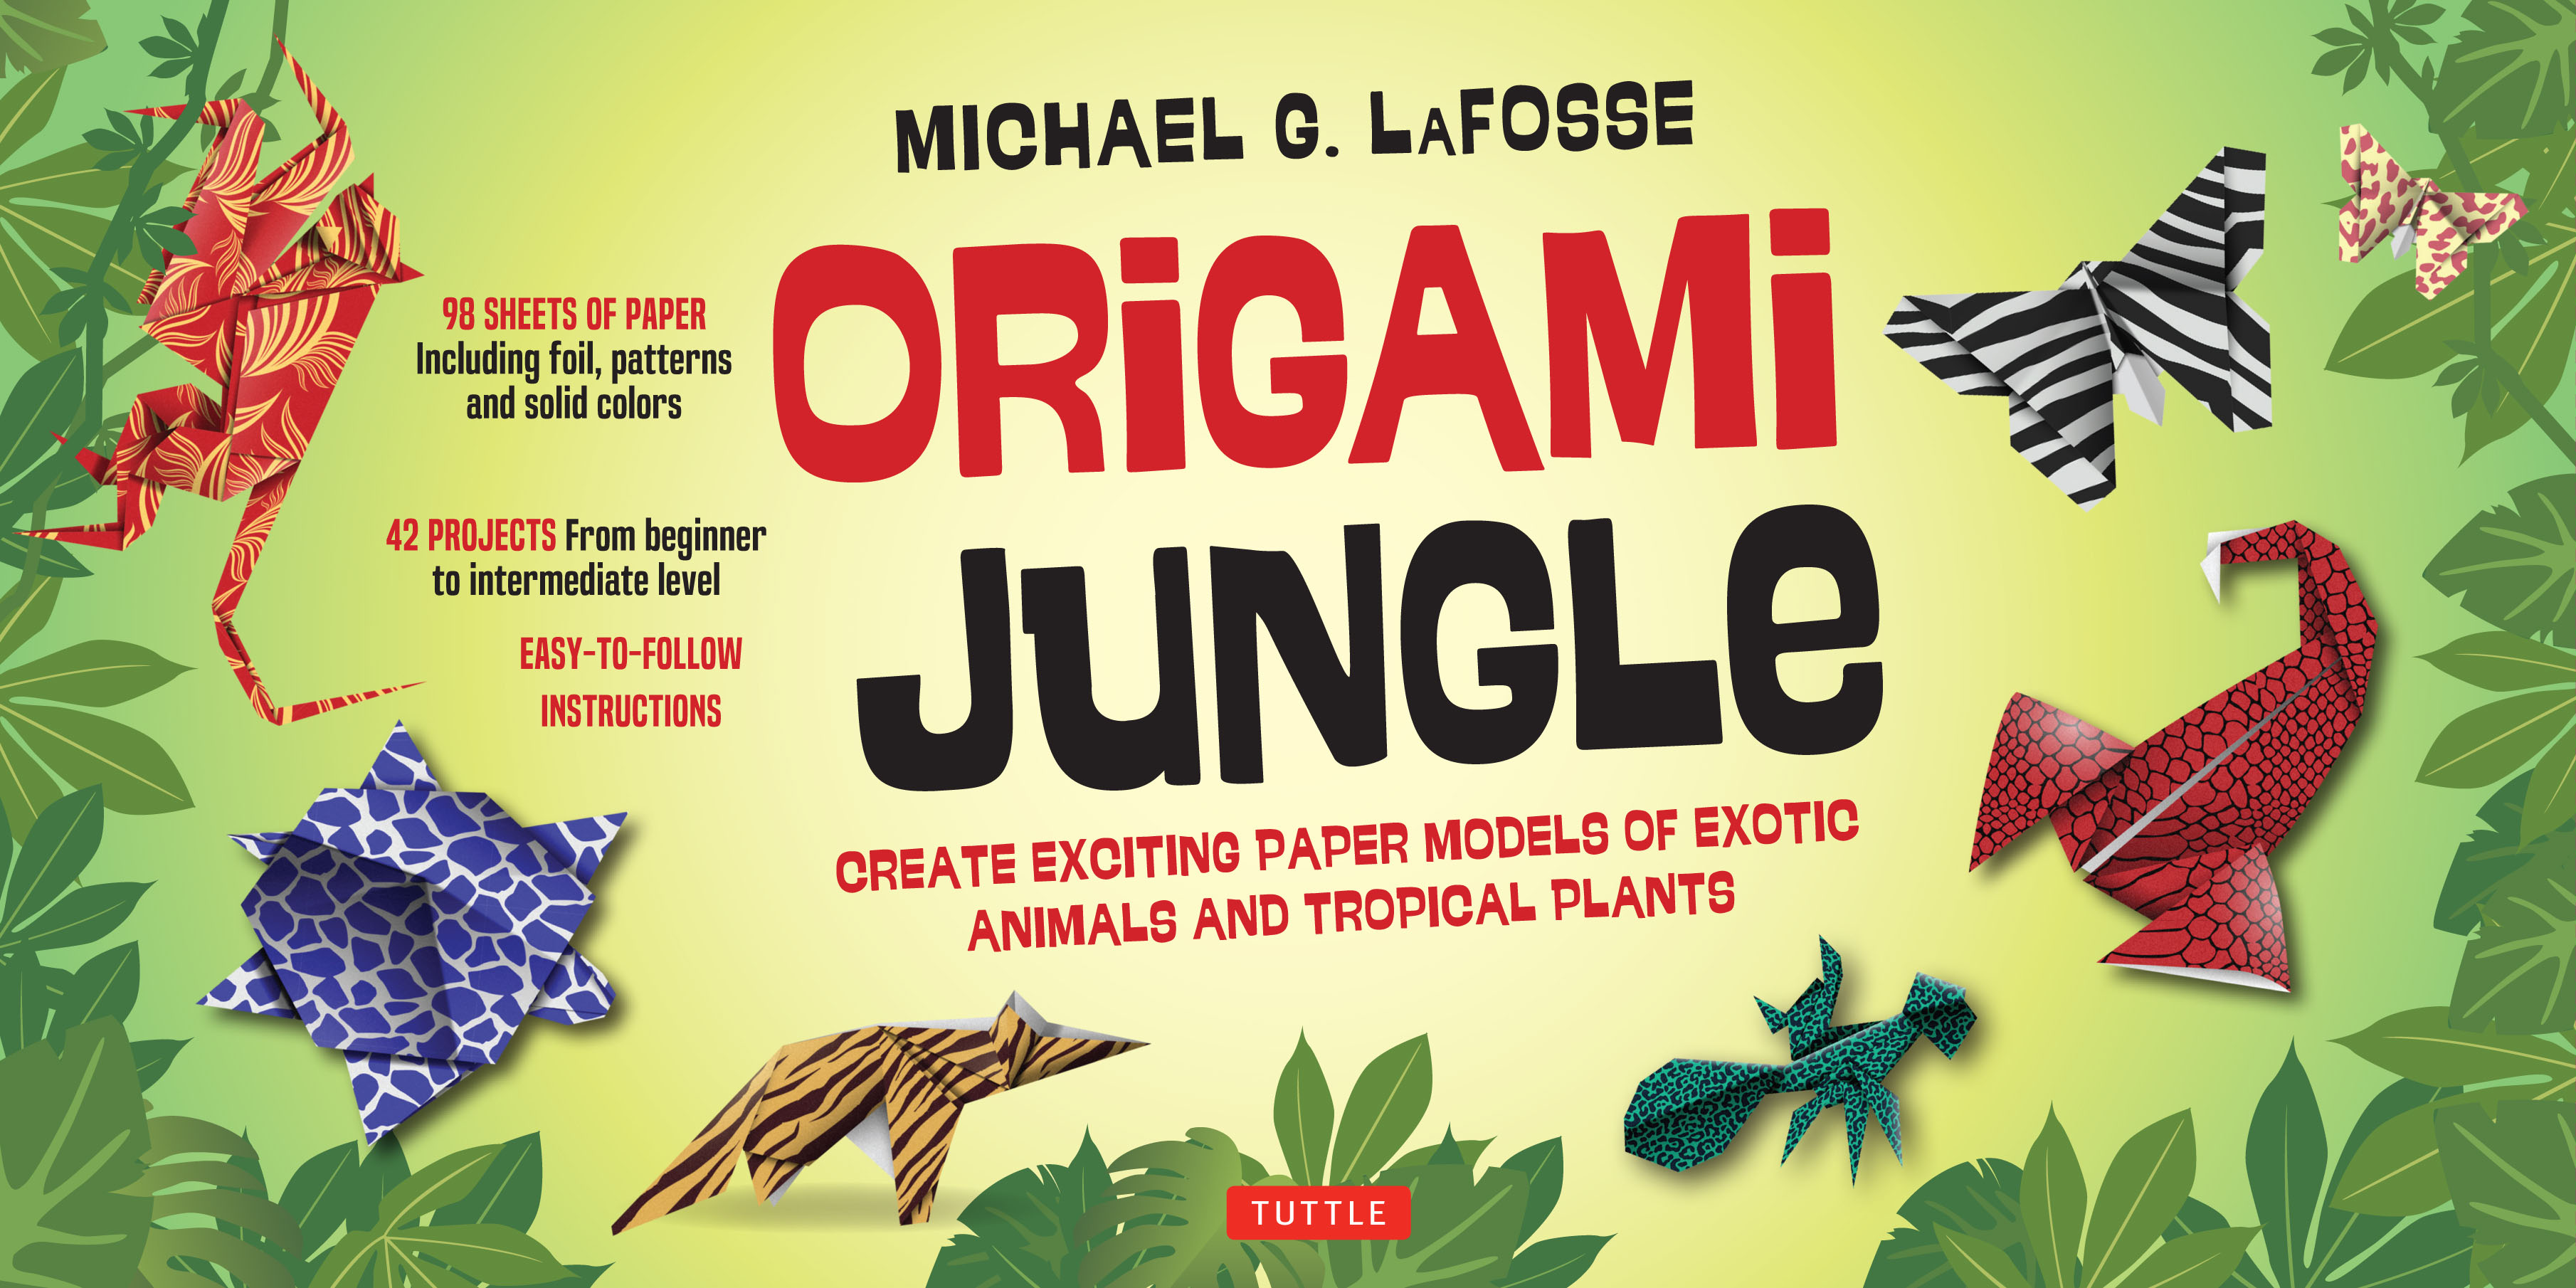 Origami jungle newsouth books make colorful and simple origami animals and their jungle habitats with this easy origami kit anteaters chameleons lemurs and lizards are just a few of jeuxipadfo Choice Image